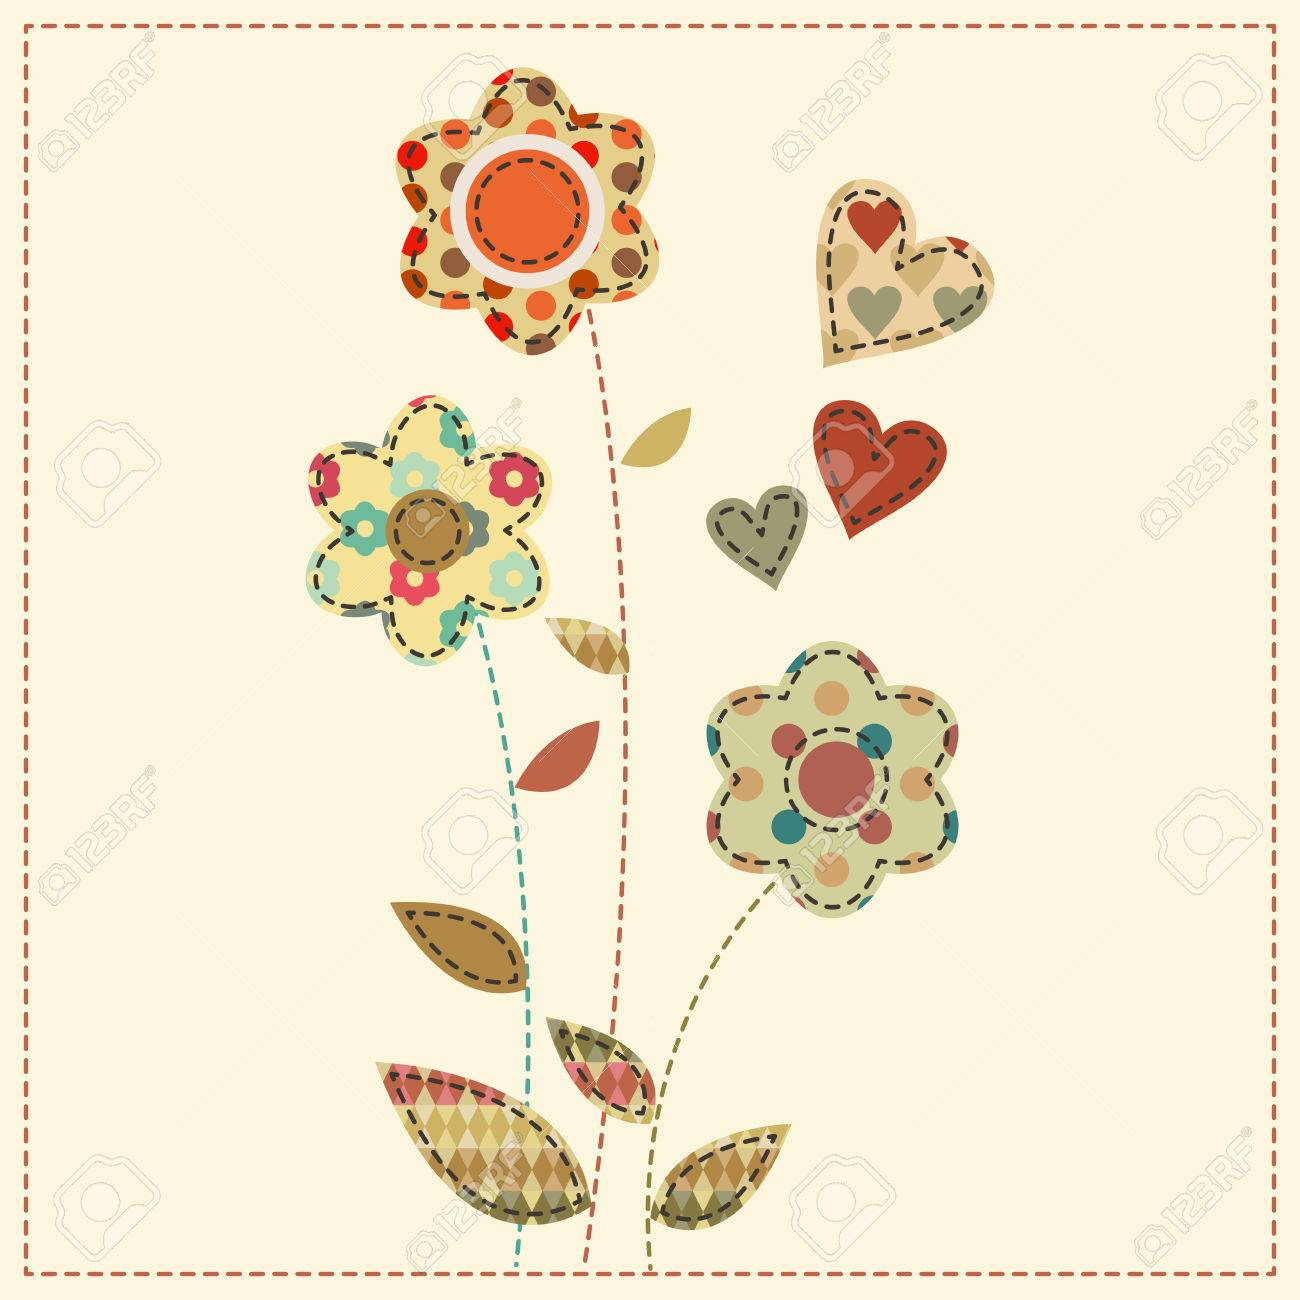 Flower bouquet decorated by hearts cute cartoon vector illustration flower bouquet decorated by hearts cute cartoon vector illustration in a patchwork style with dark izmirmasajfo